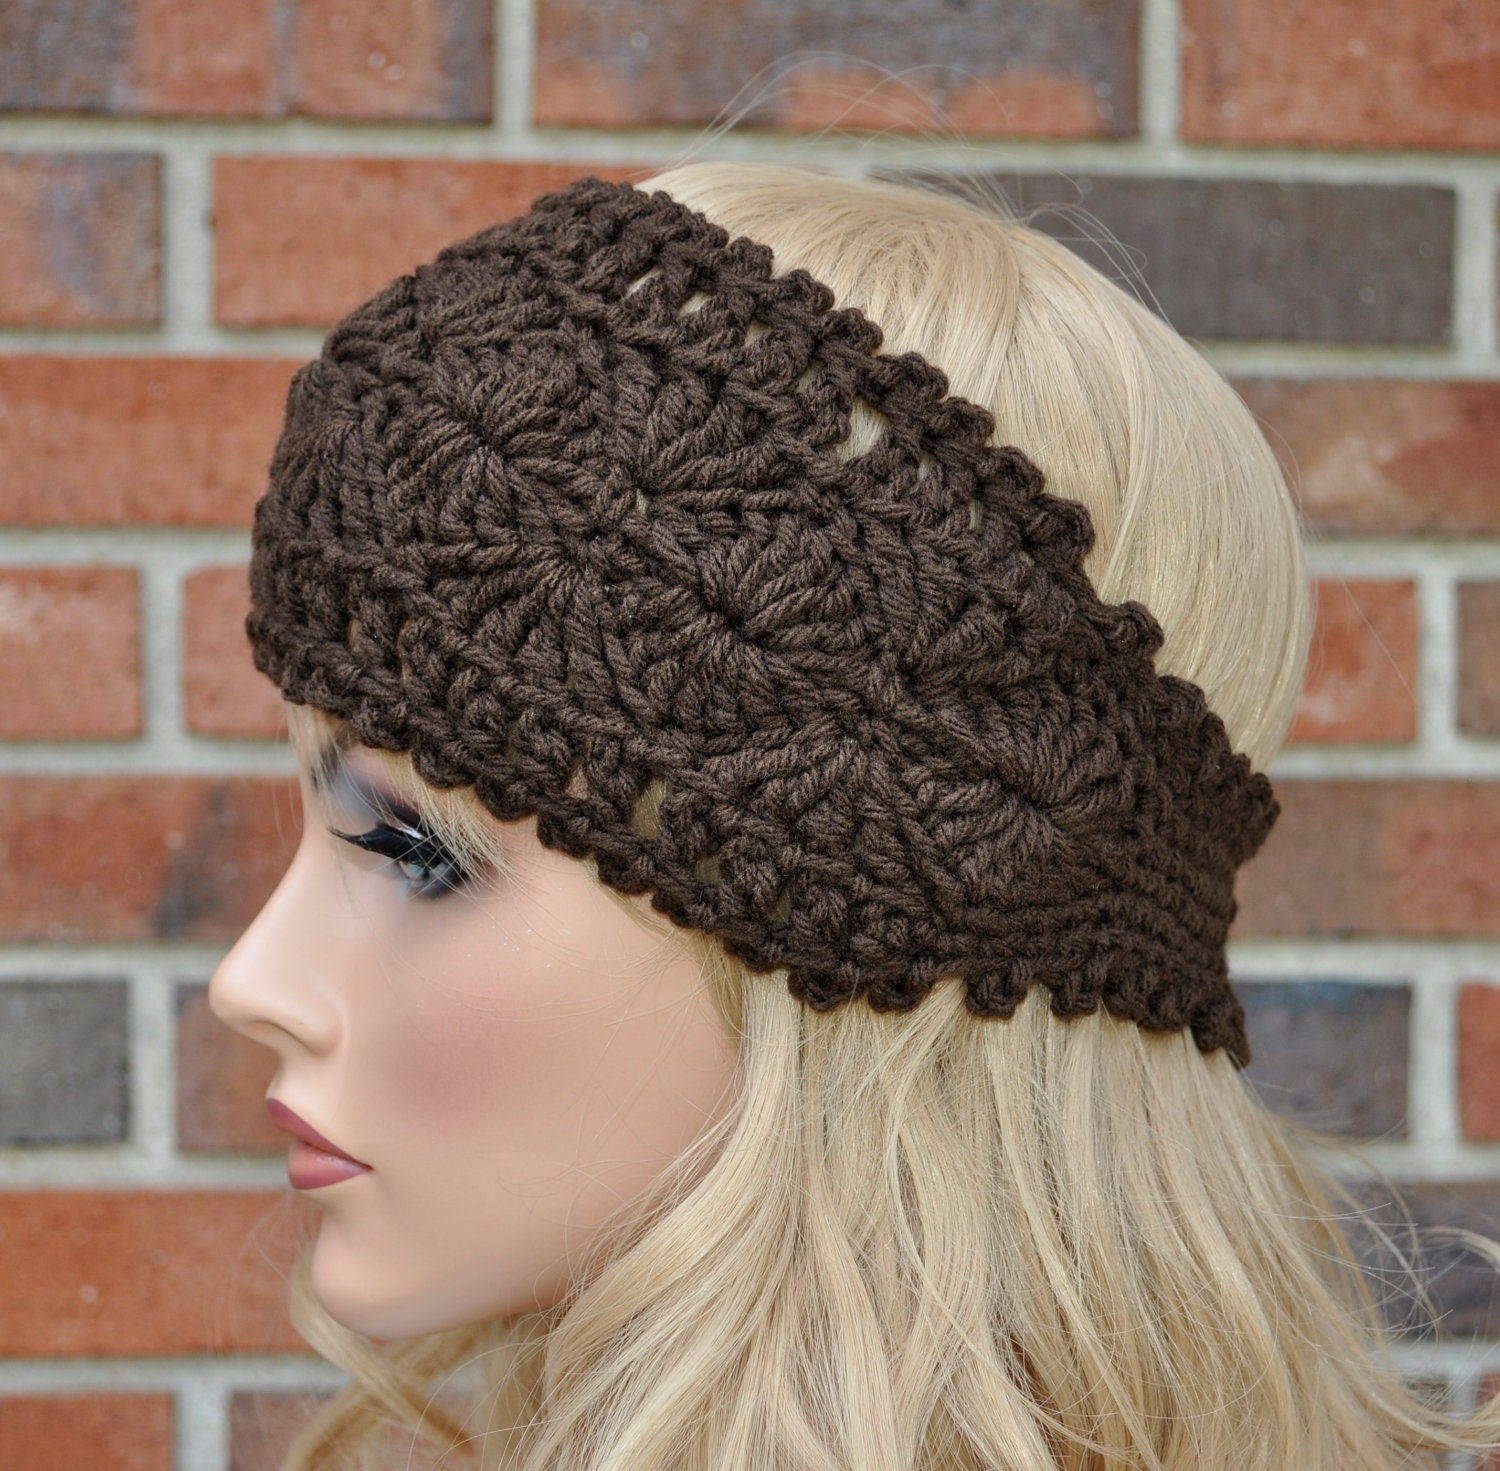 Free Crochet Pattern For Ladies Headband : Crochet Headwrap Womens Crochet Headband in Chocolate